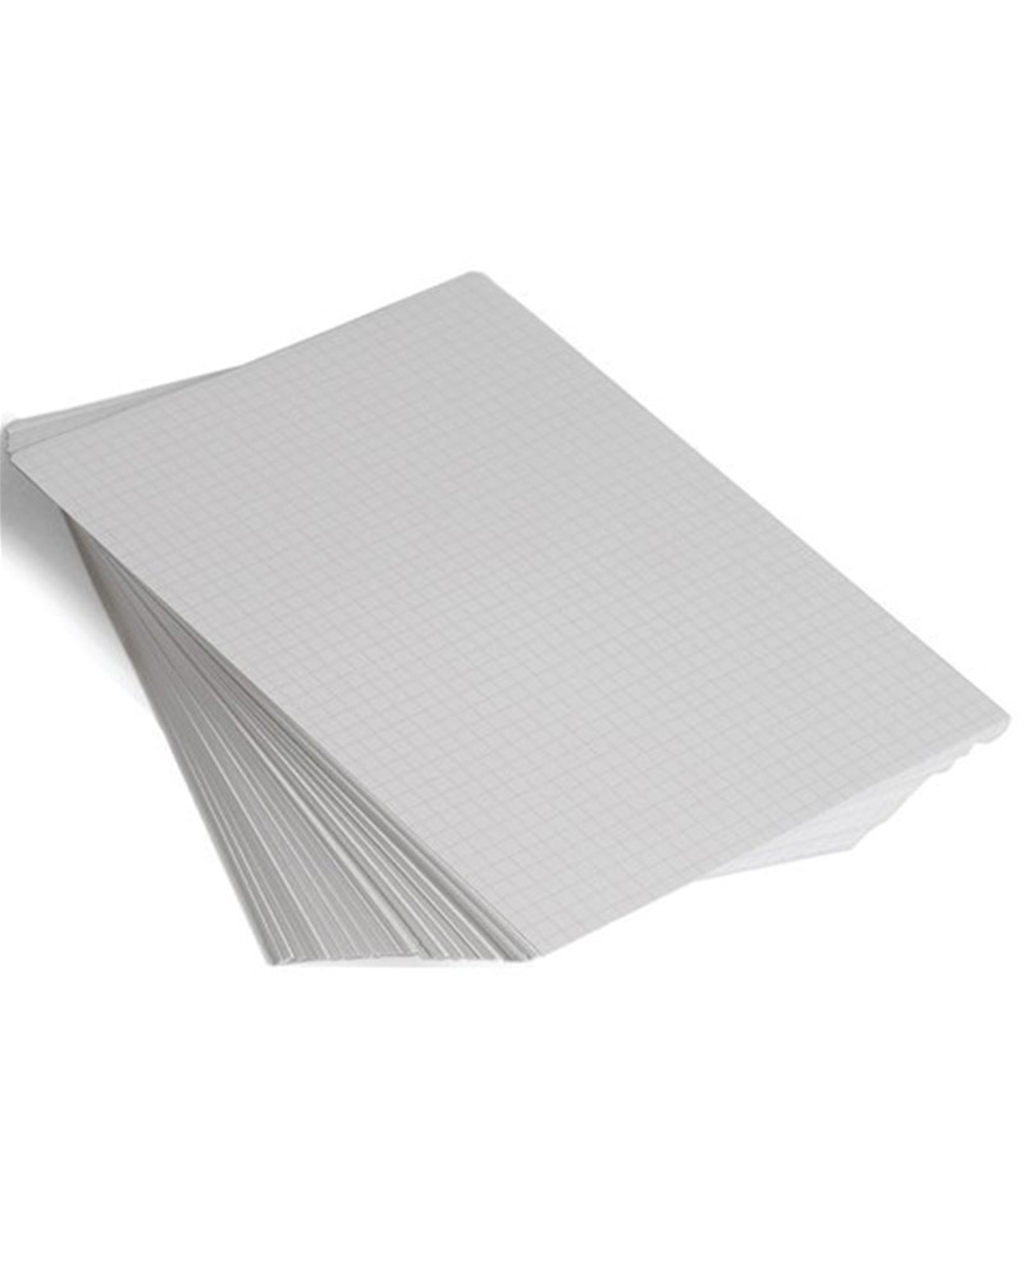 A4 Exercise Paper Punched Left Corner, 5mm Squares